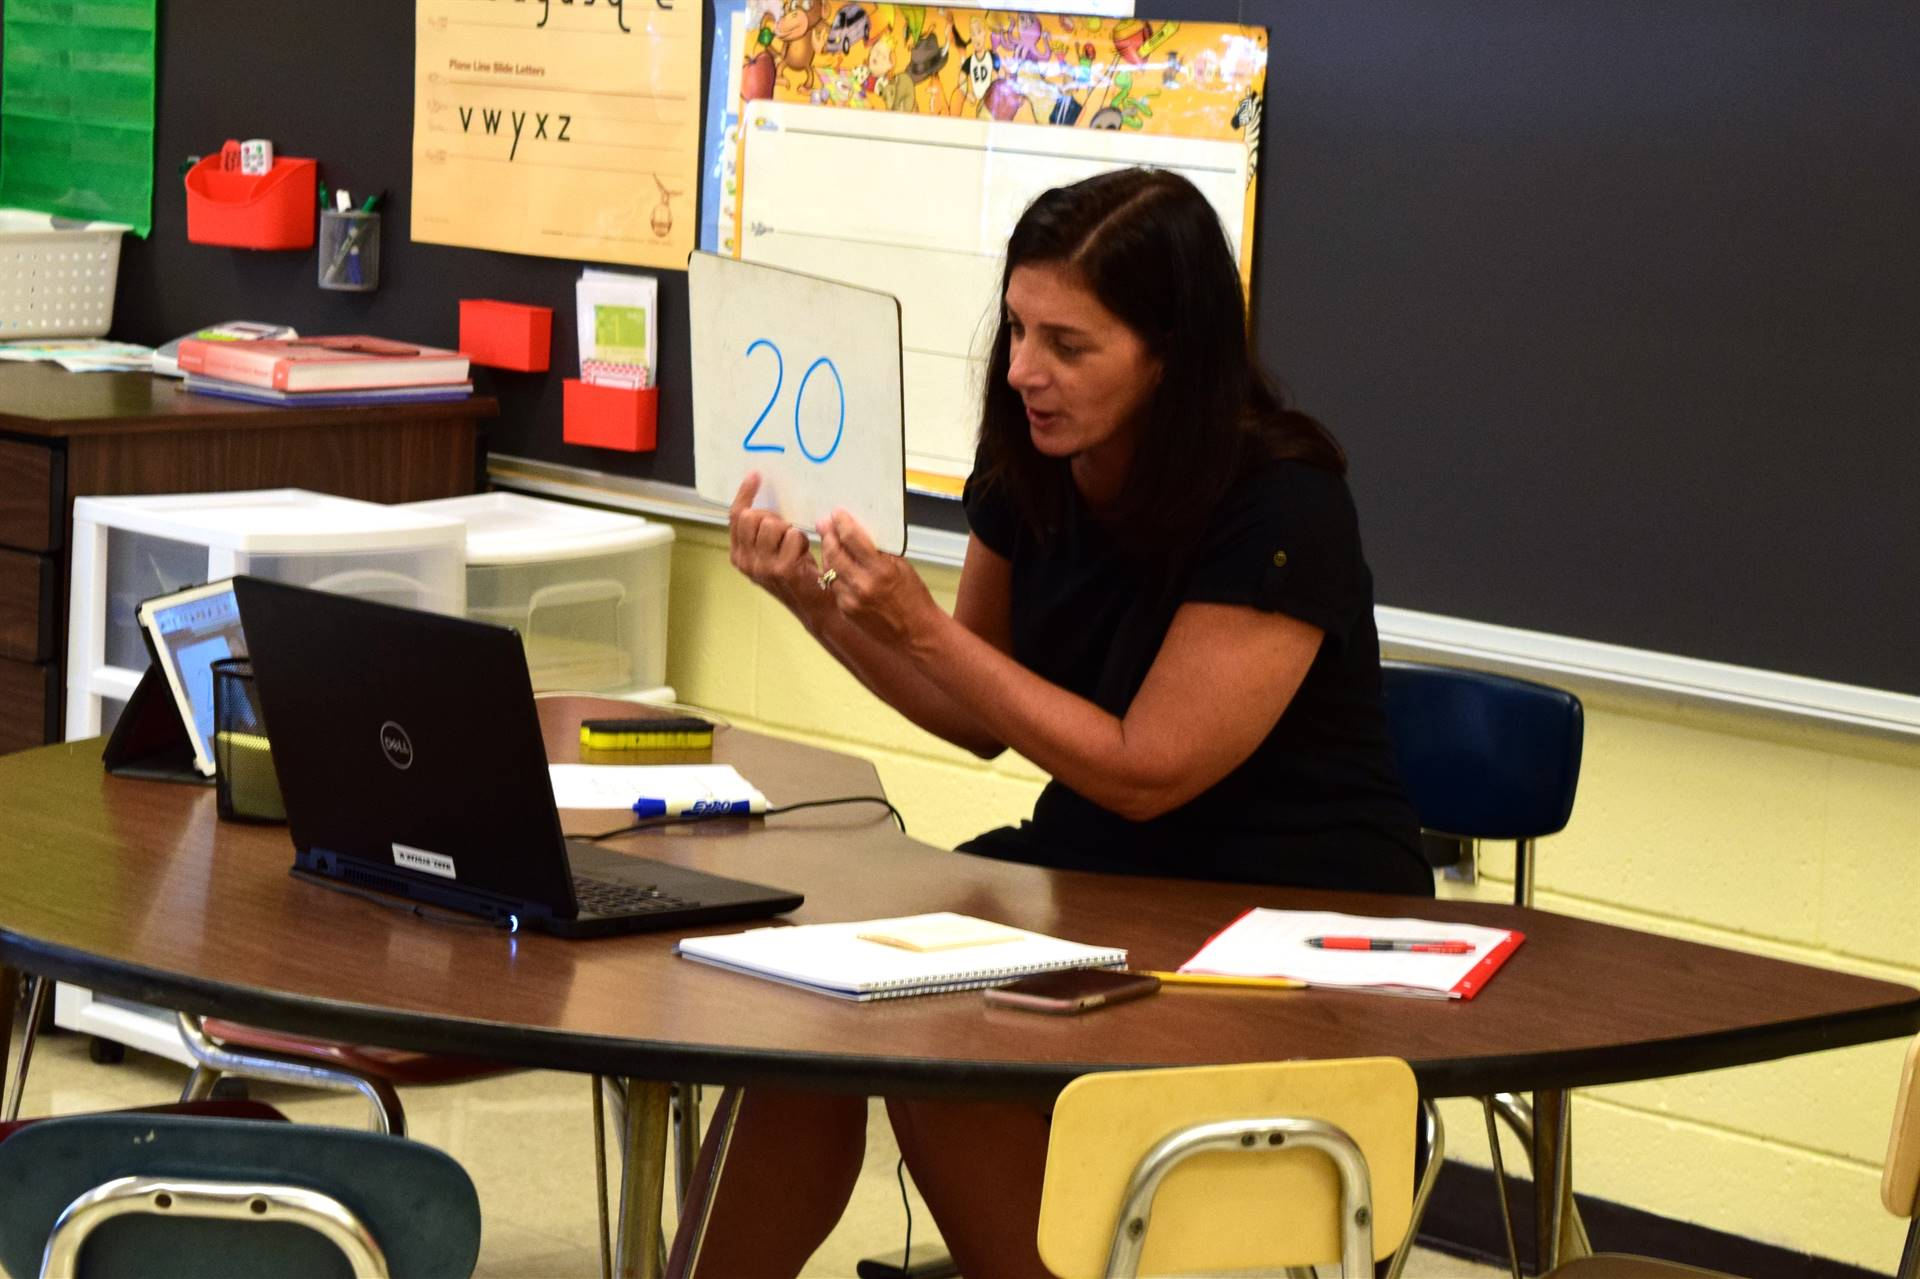 First grade teacher using her laptop to teach virtually